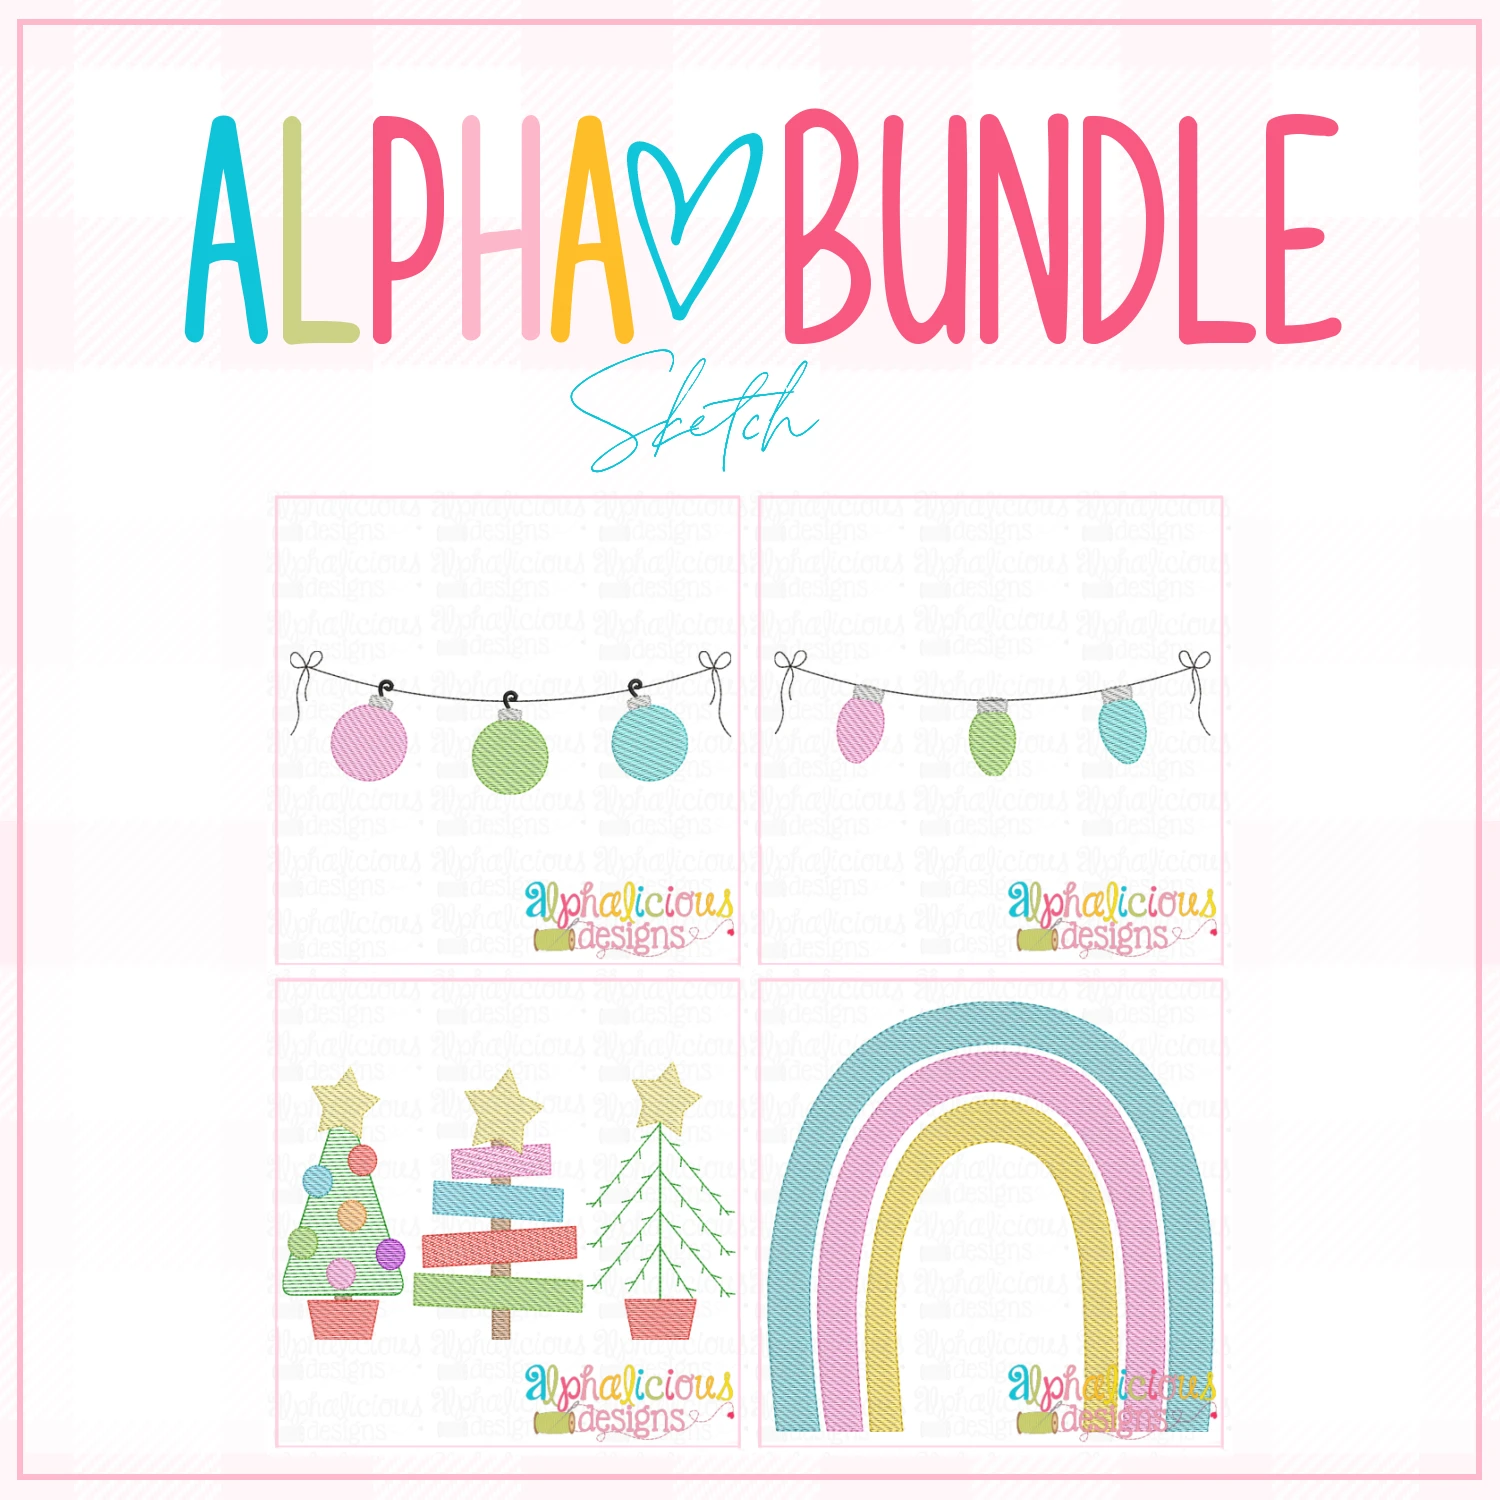 ALPHA BUNDLE-11-6-20 Release-Sketch